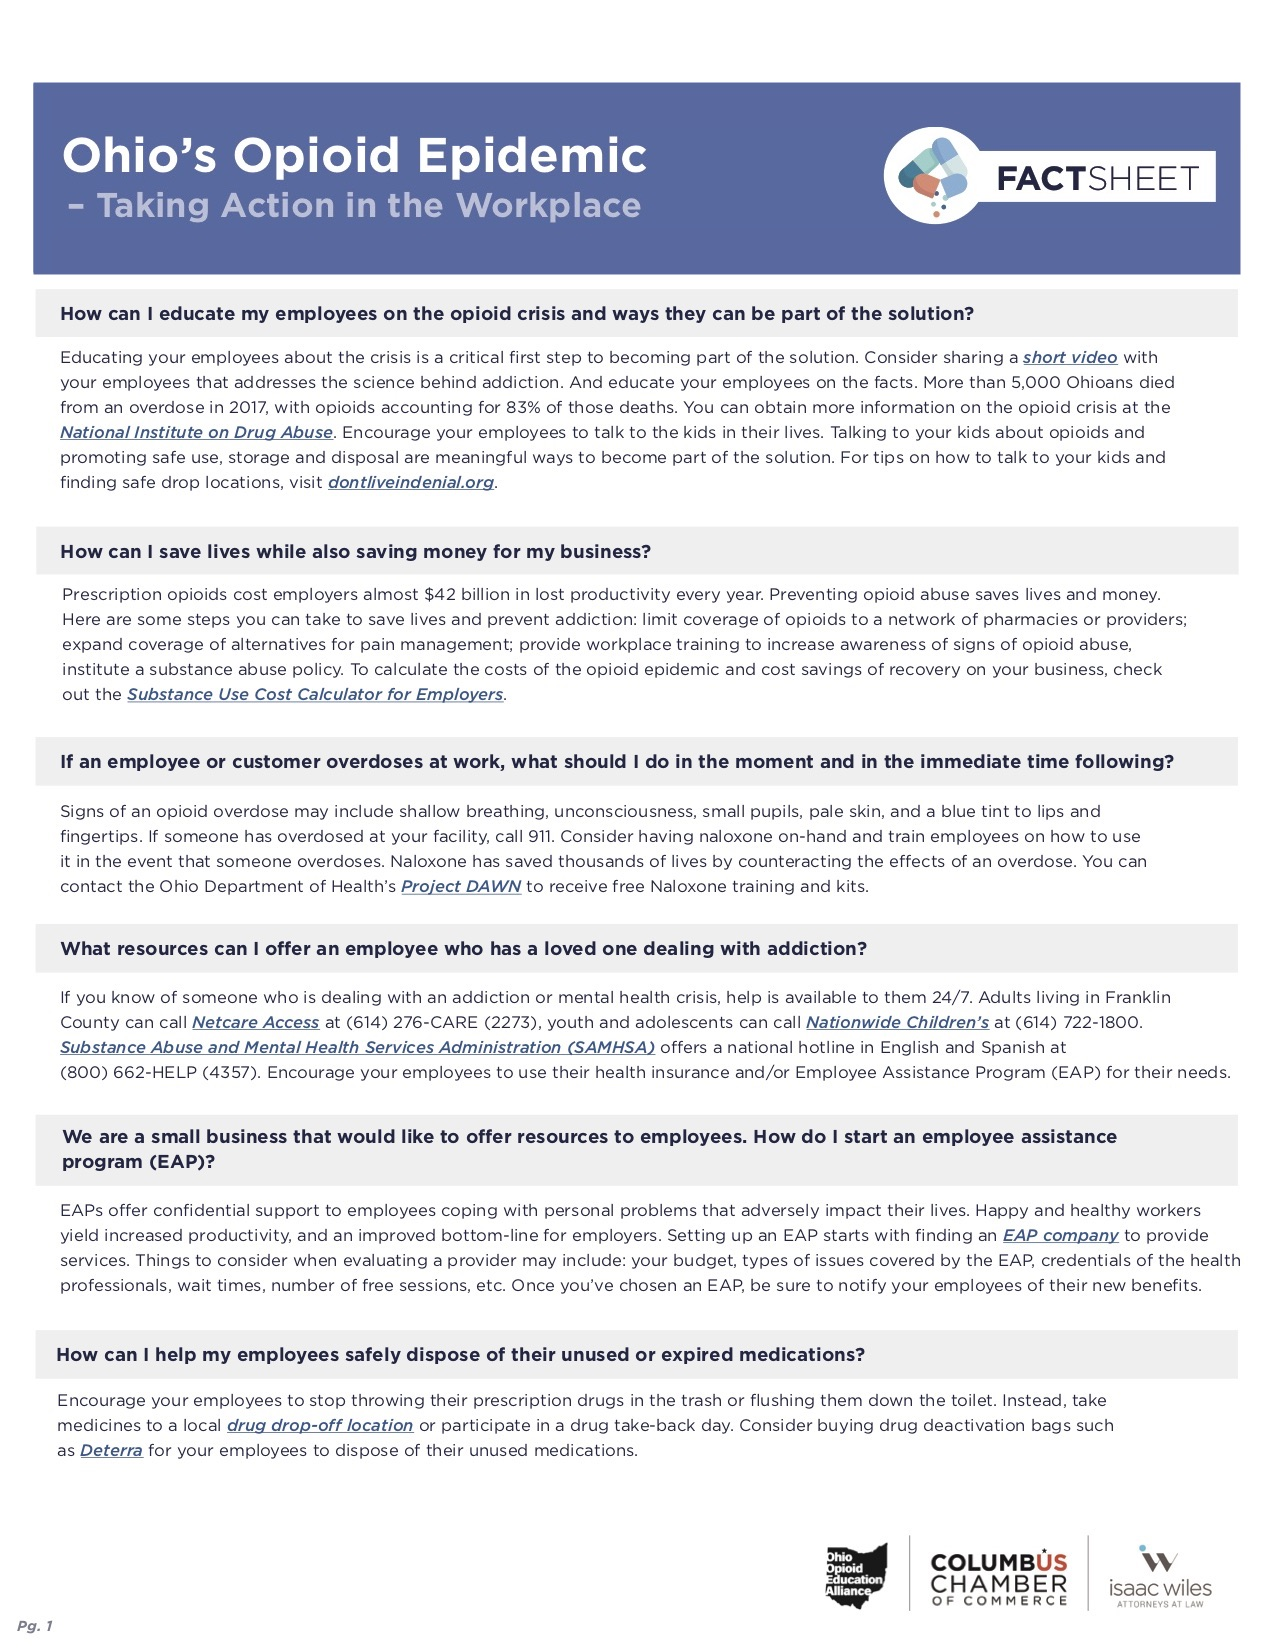 Workplace Opioid Use Fact Sheet